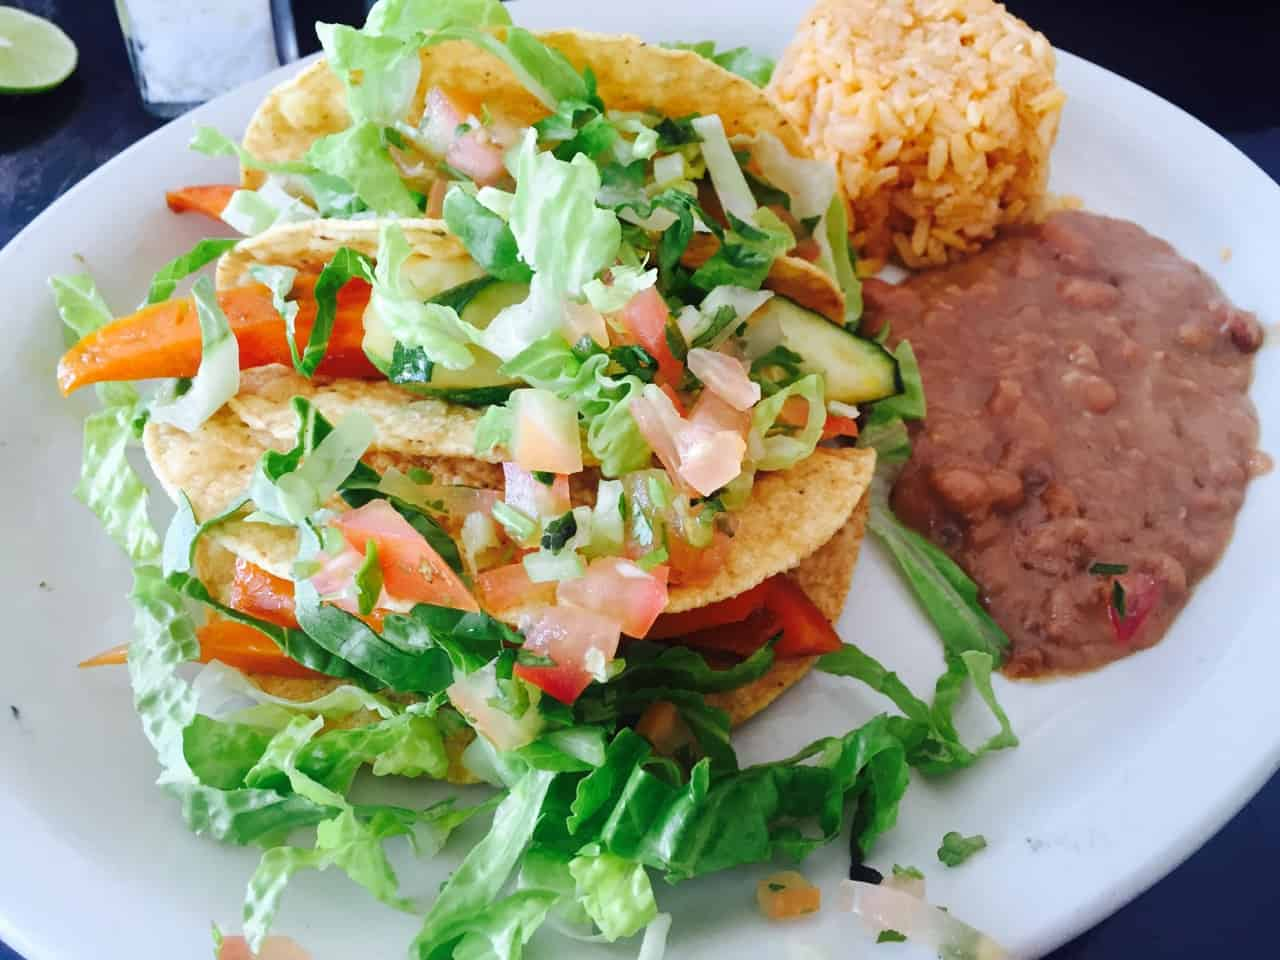 Tacos in Mexico, photo by Burger Abroad